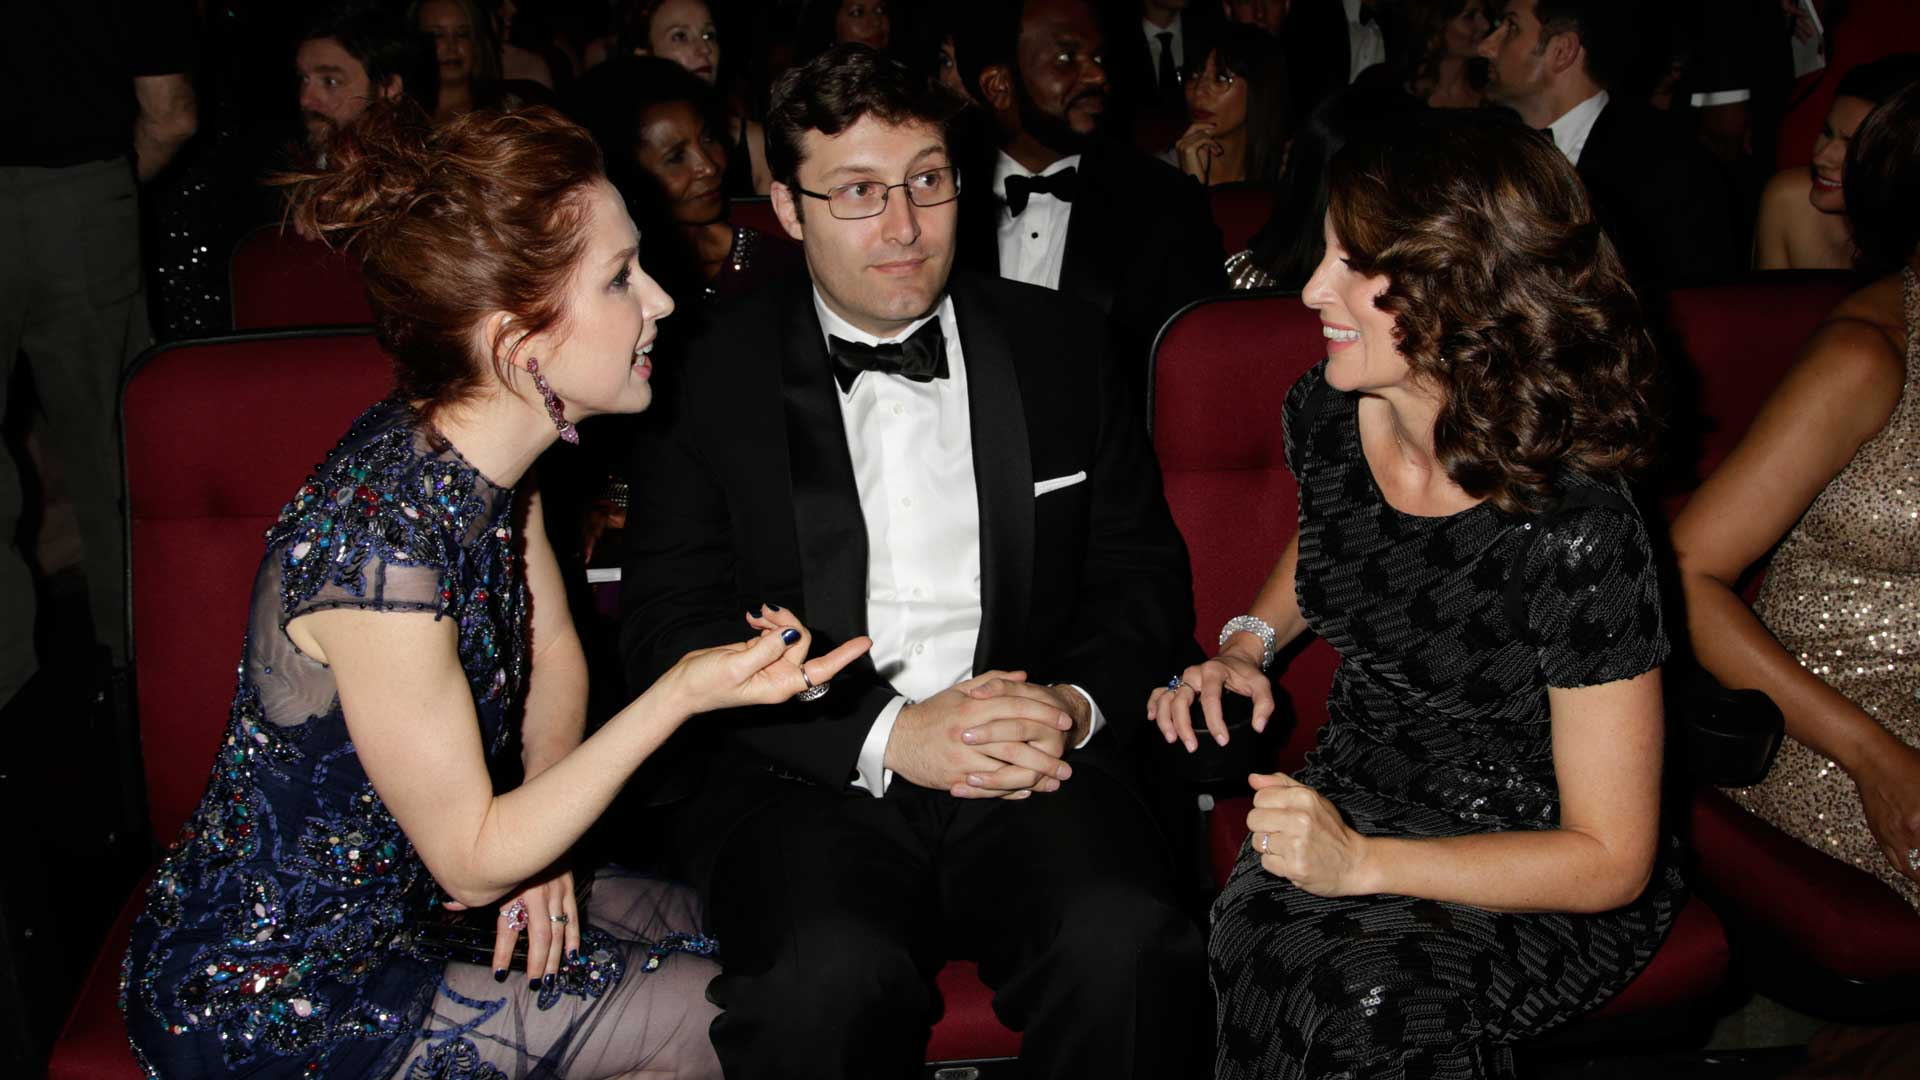 Ellie Kemper shares a moment with Tina Fey.